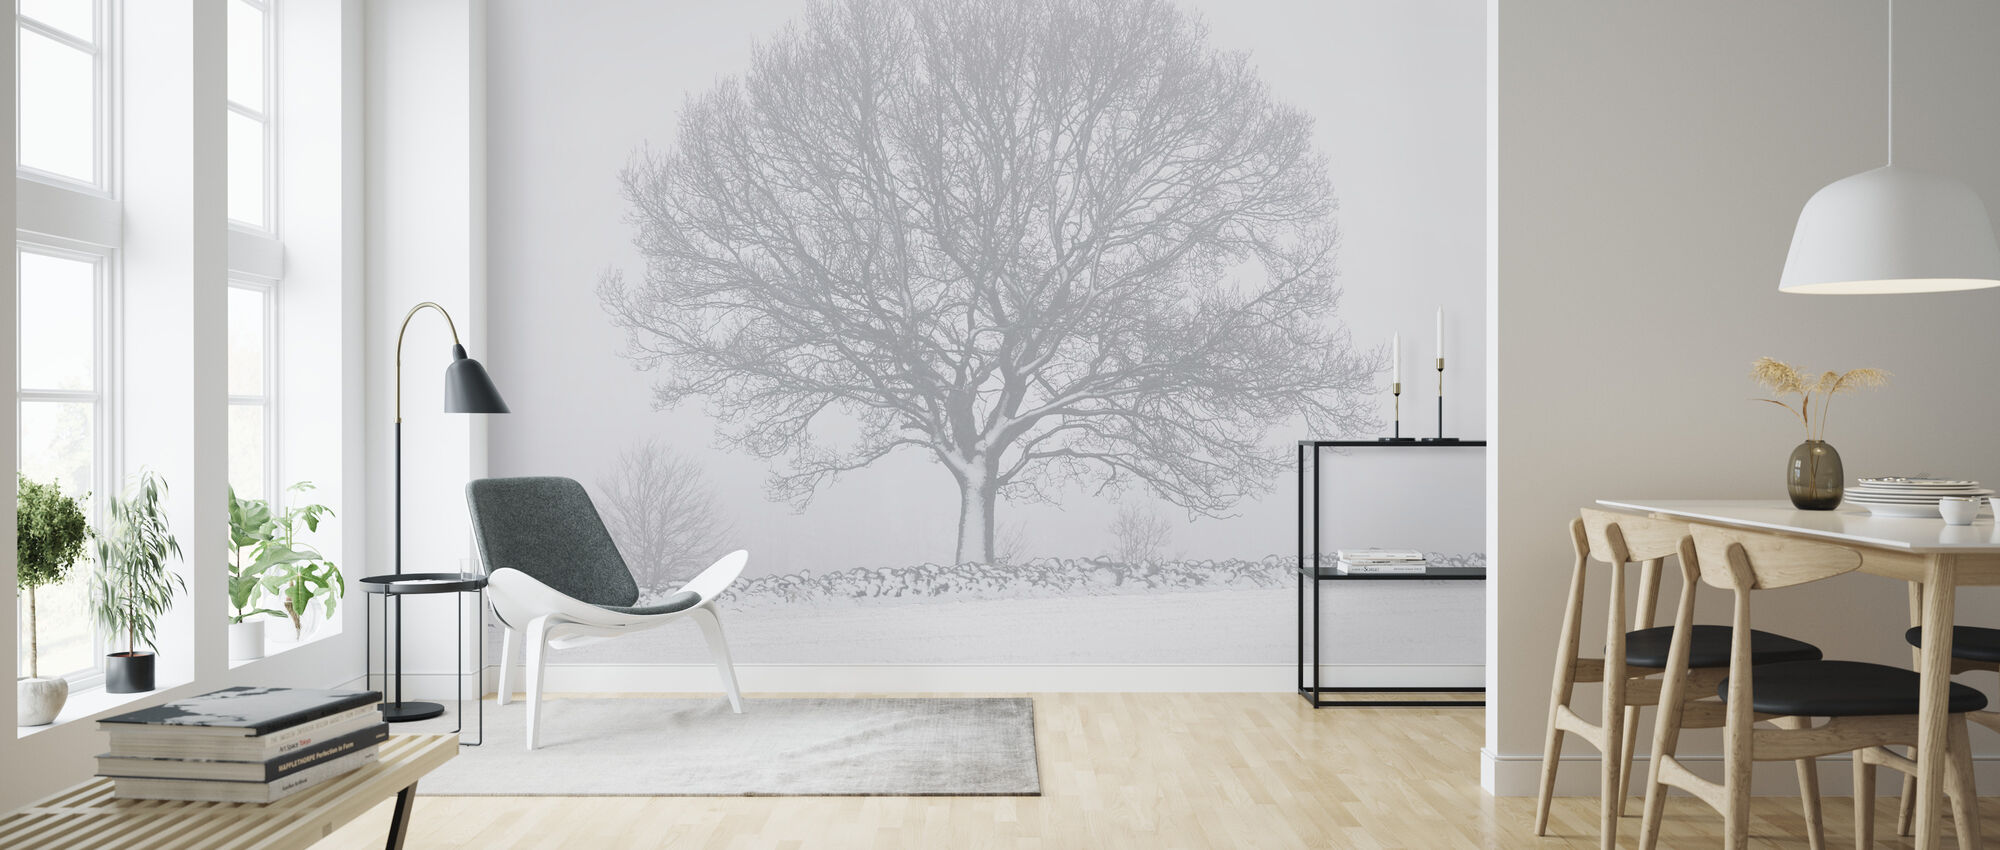 Winter Tree by Stone Wall - Wallpaper - Living Room